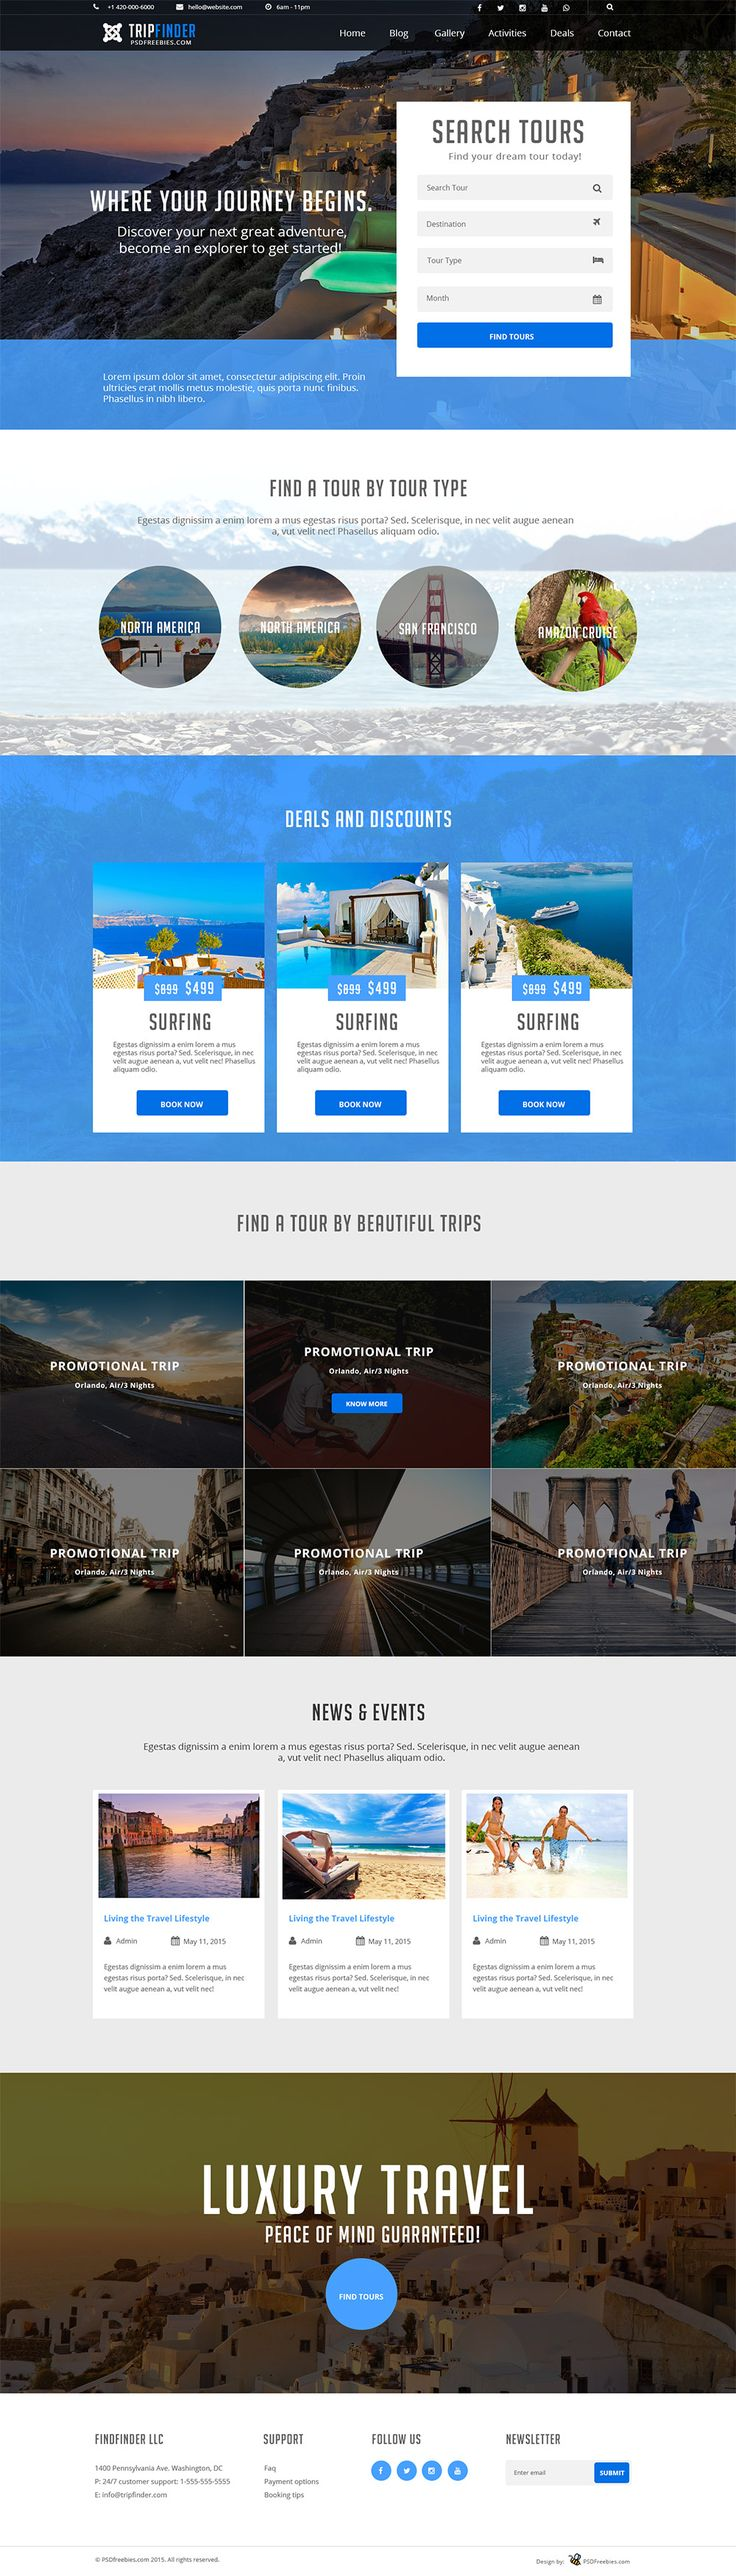 Download Free Tour and Travel Guide PSD